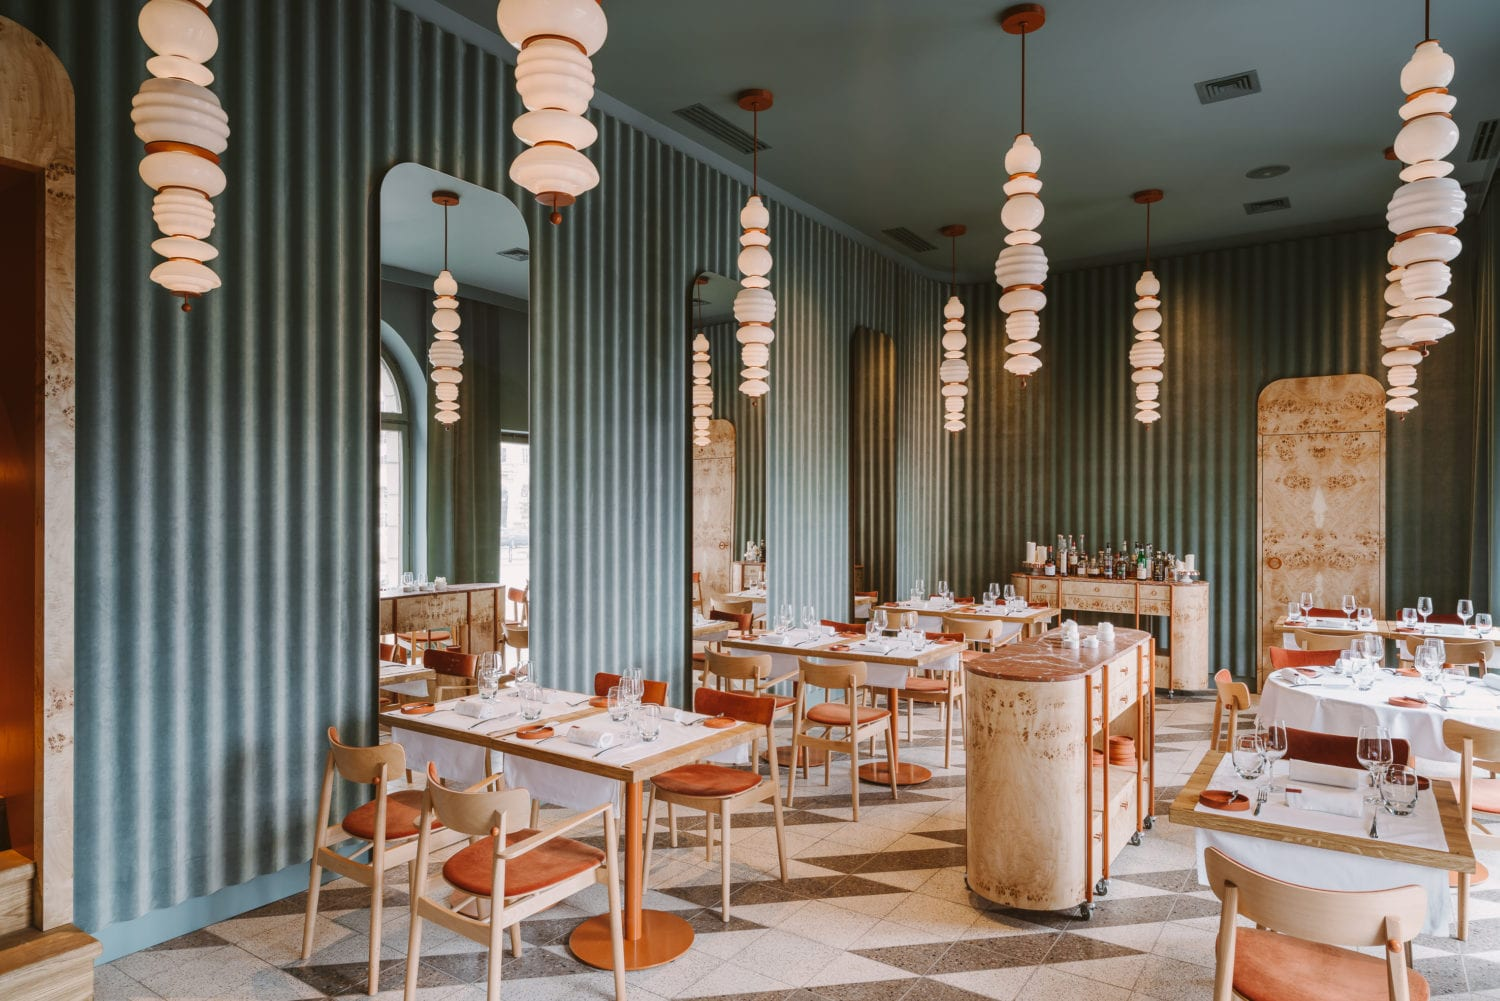 Opasly Tom Restaurant In Warsaw Poland By Buck Studio Yellowtrace 04